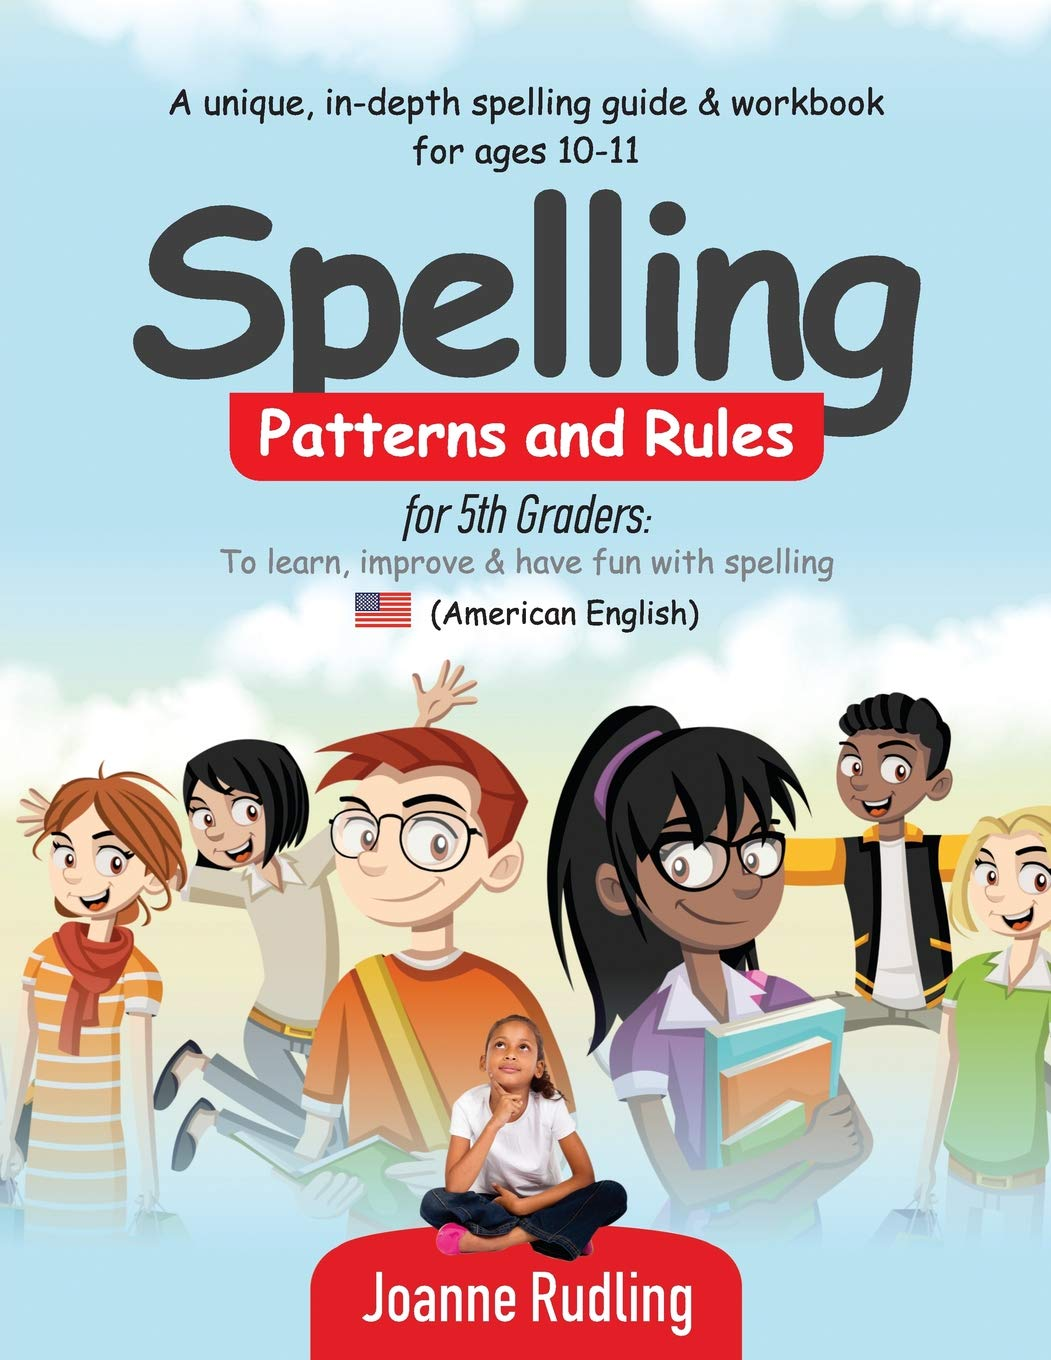 Spelling Patterns And Rules For 5th Graders  To Learn Improve And Have Fun With Spelling